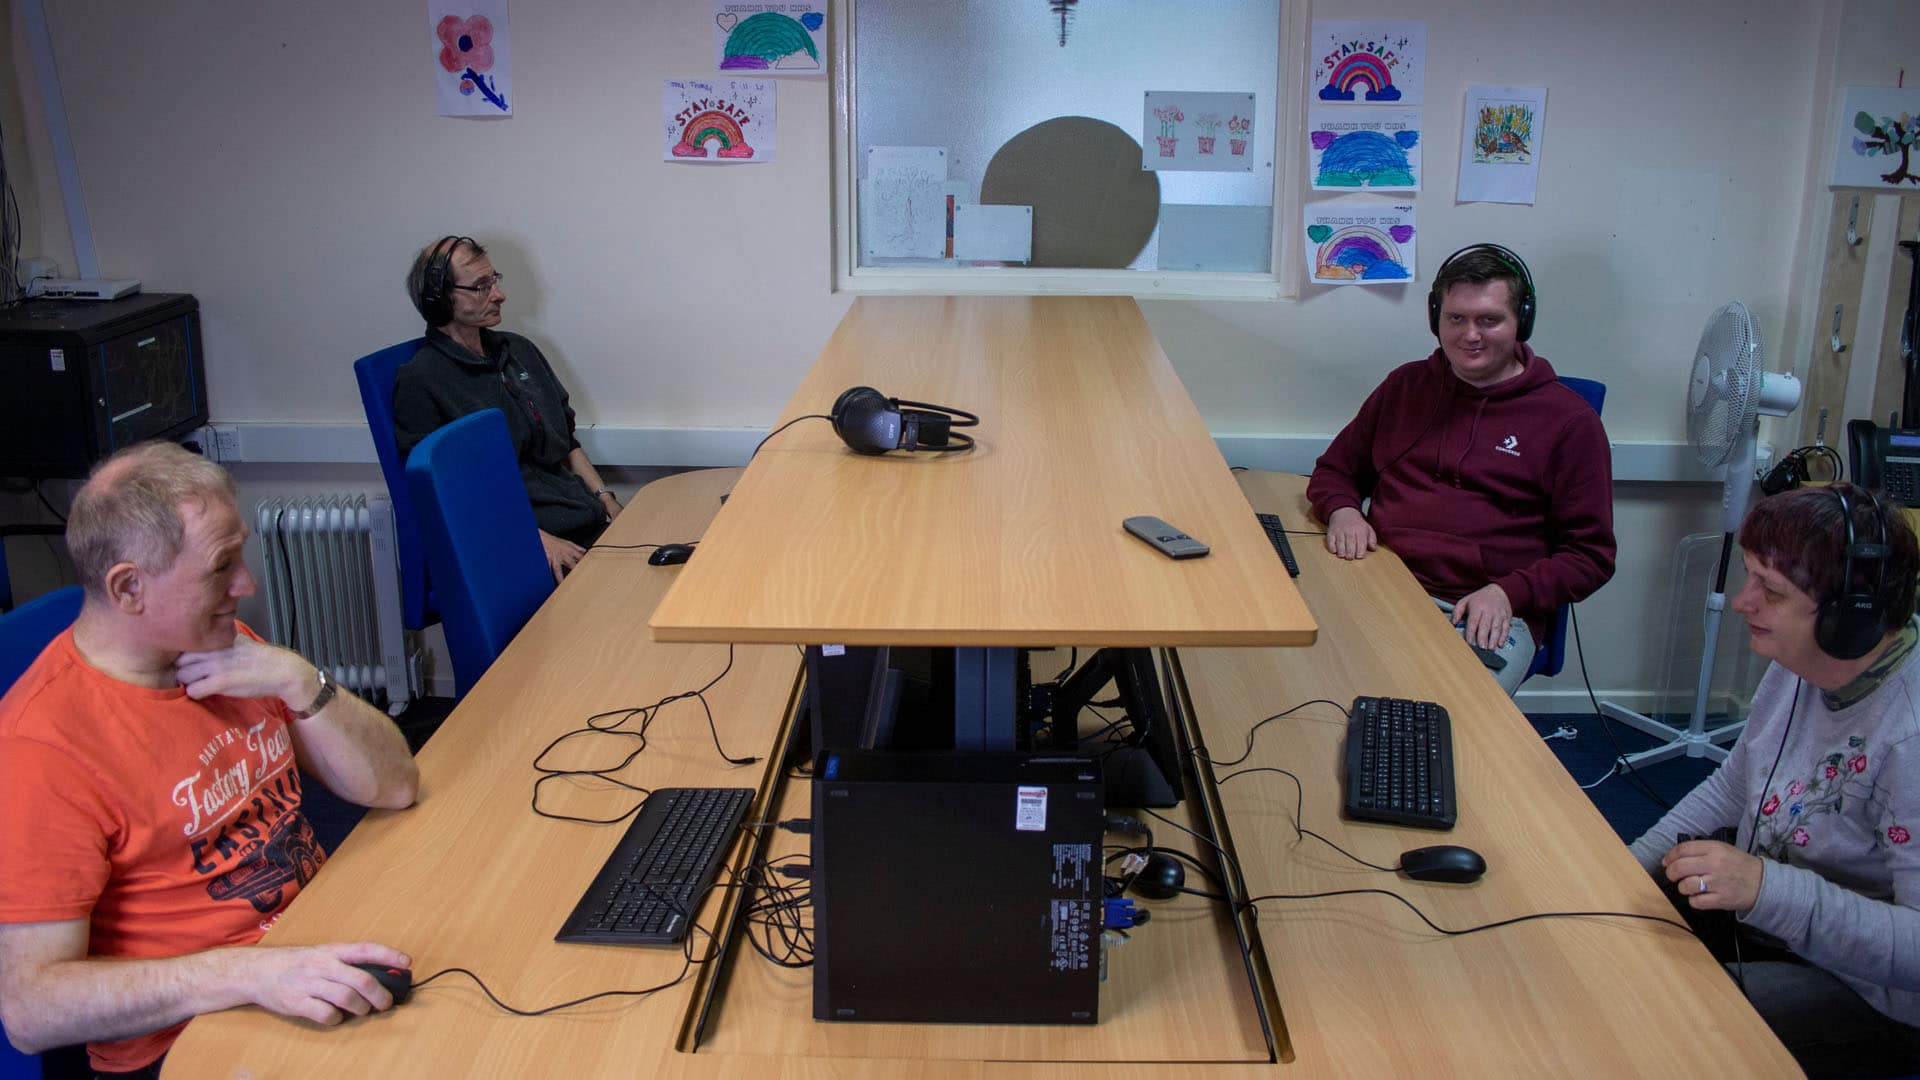 Four service users in the computer room on PCs